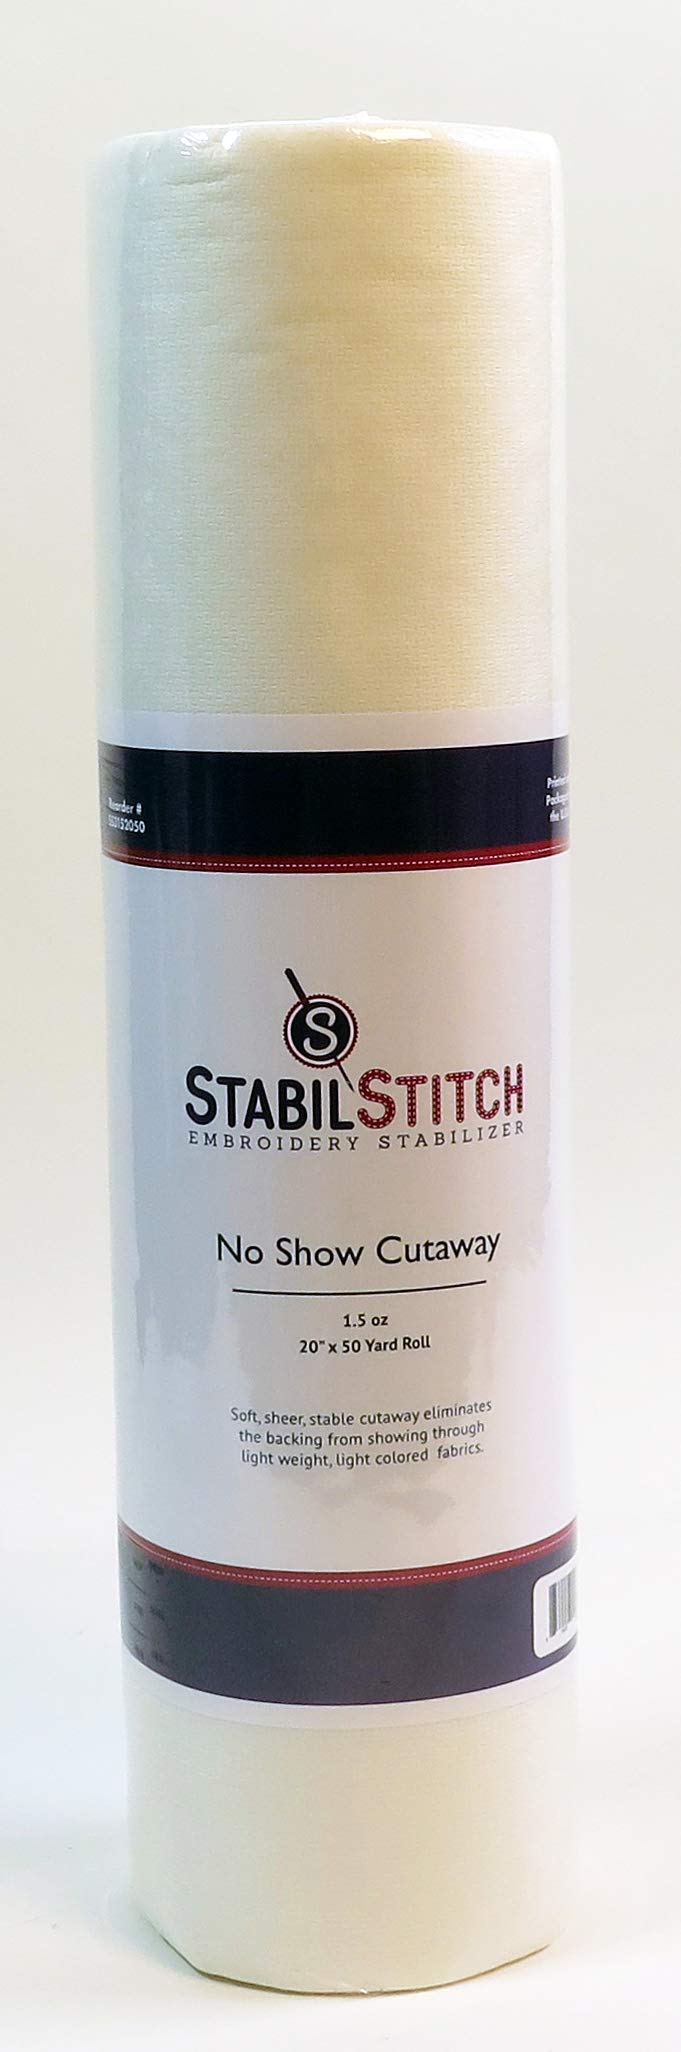 No Show (1.5 oz.) Cutaway 20'' x 50 Yd Roll - Embroidery Stabilizer by StabilStitch